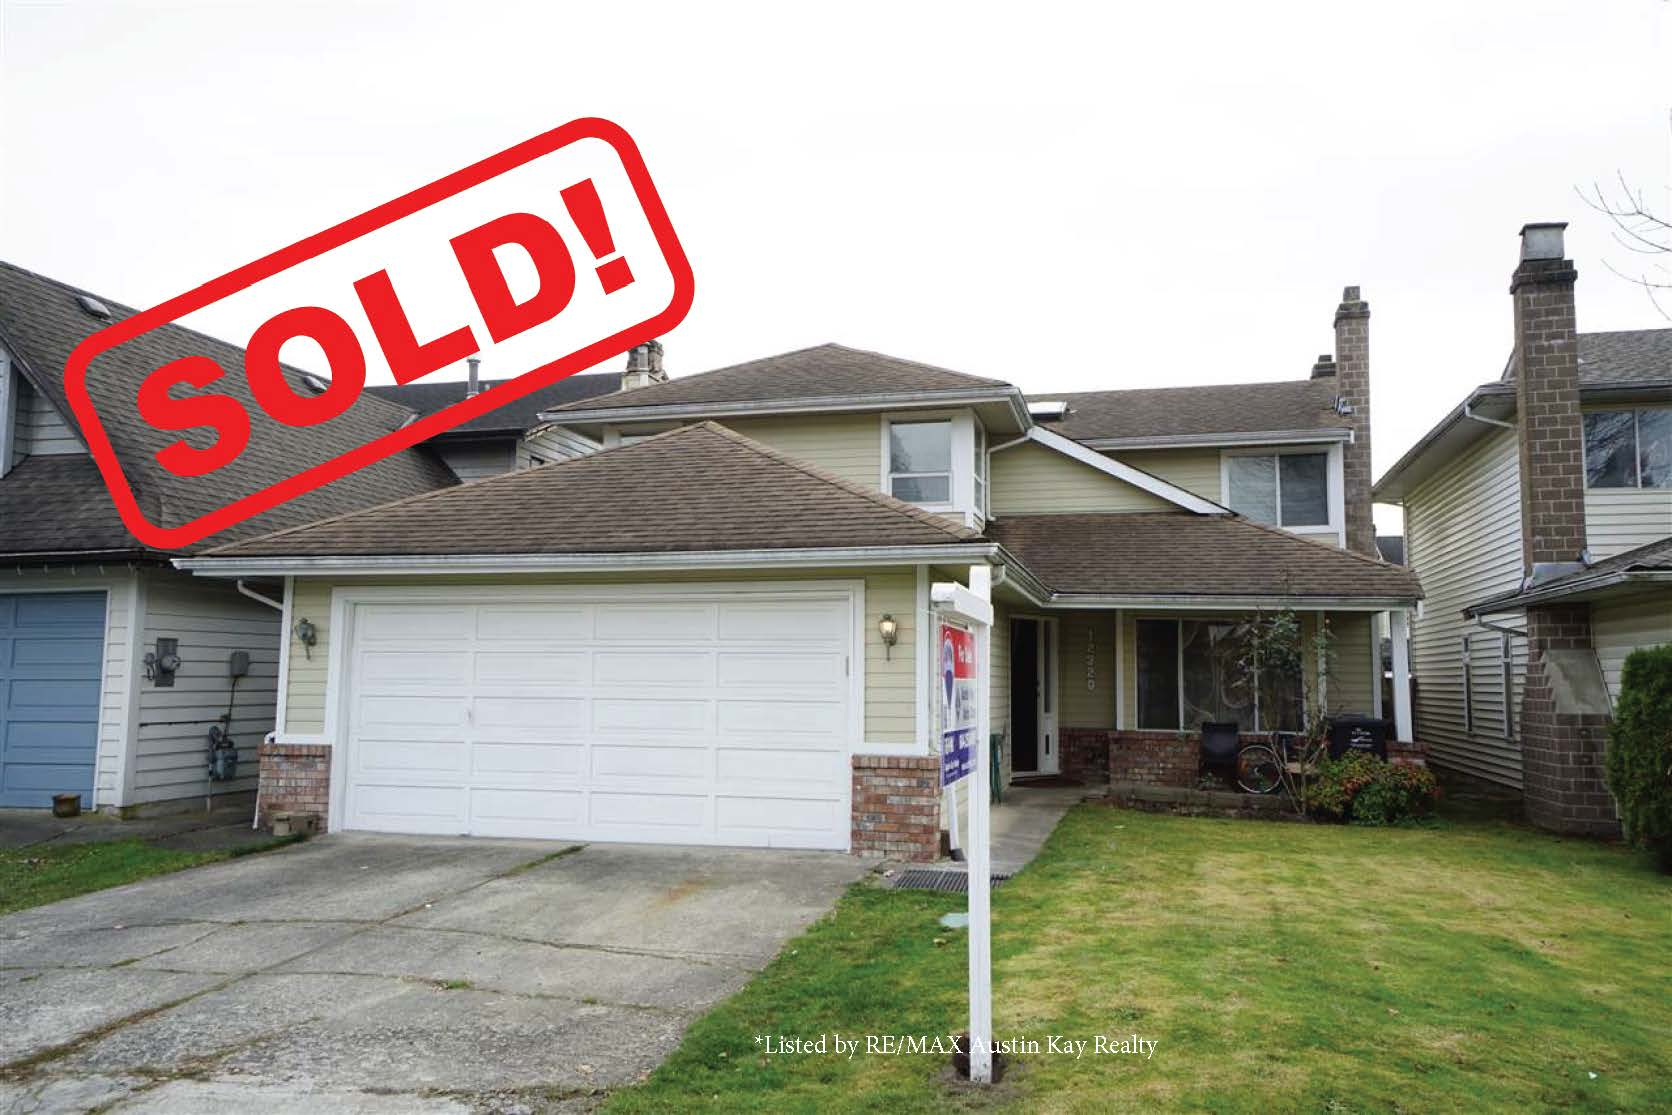 12320 Greenland Drive   sold for: $1,126,000  4 BED | 4 BATH | 2,105 SF